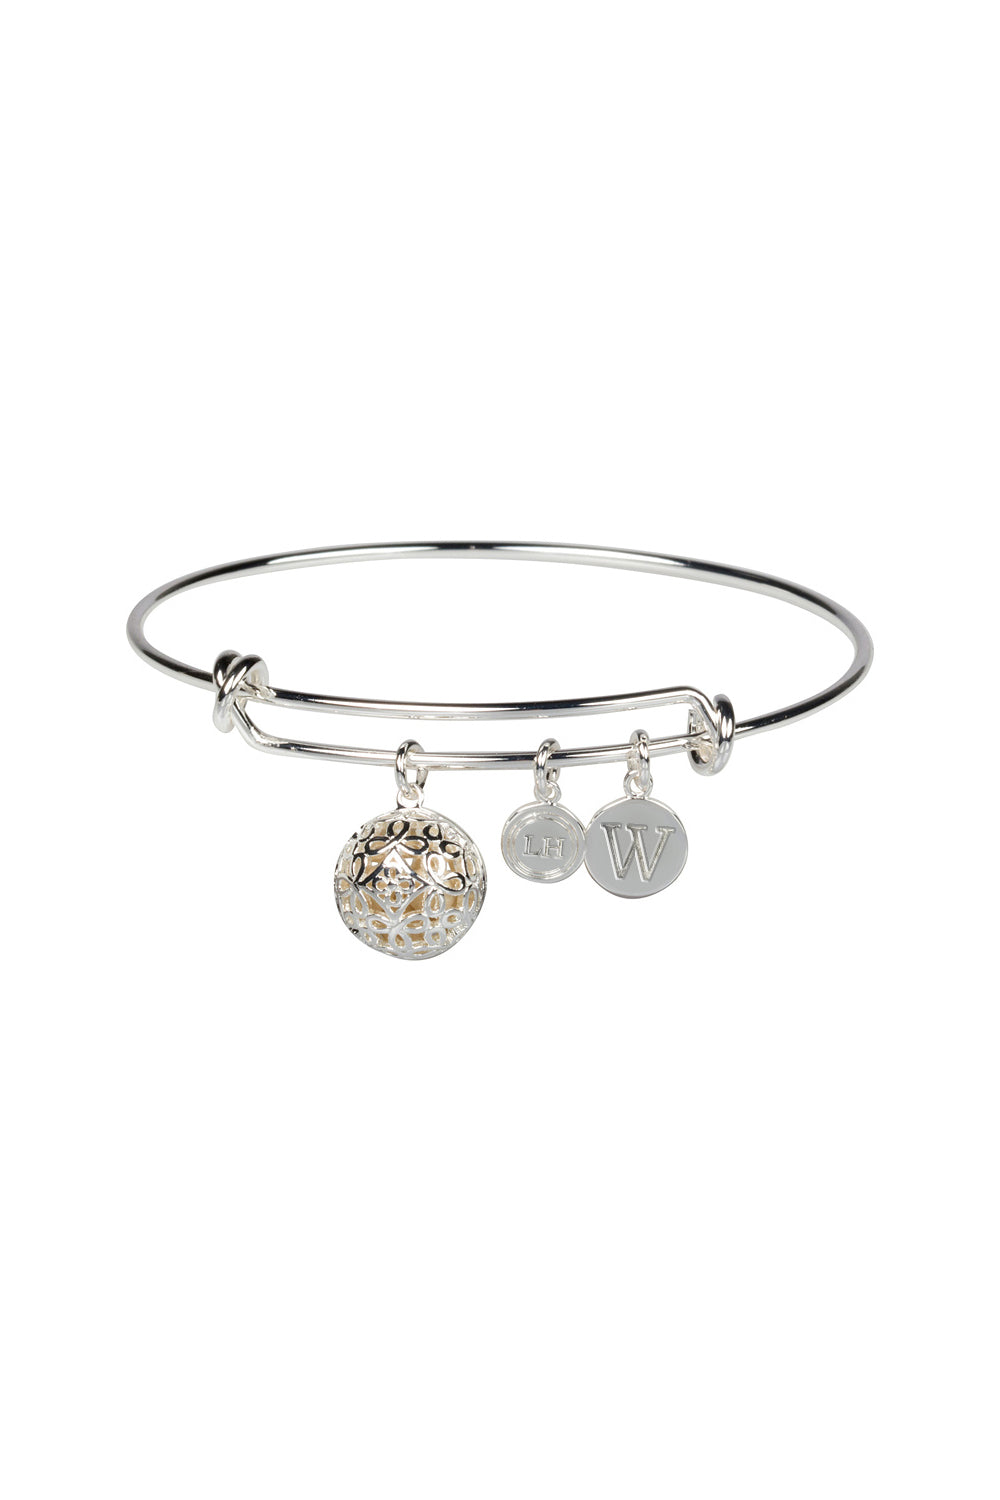 """W"" Initial Fragrance Bangle with Silver Tone Charm"